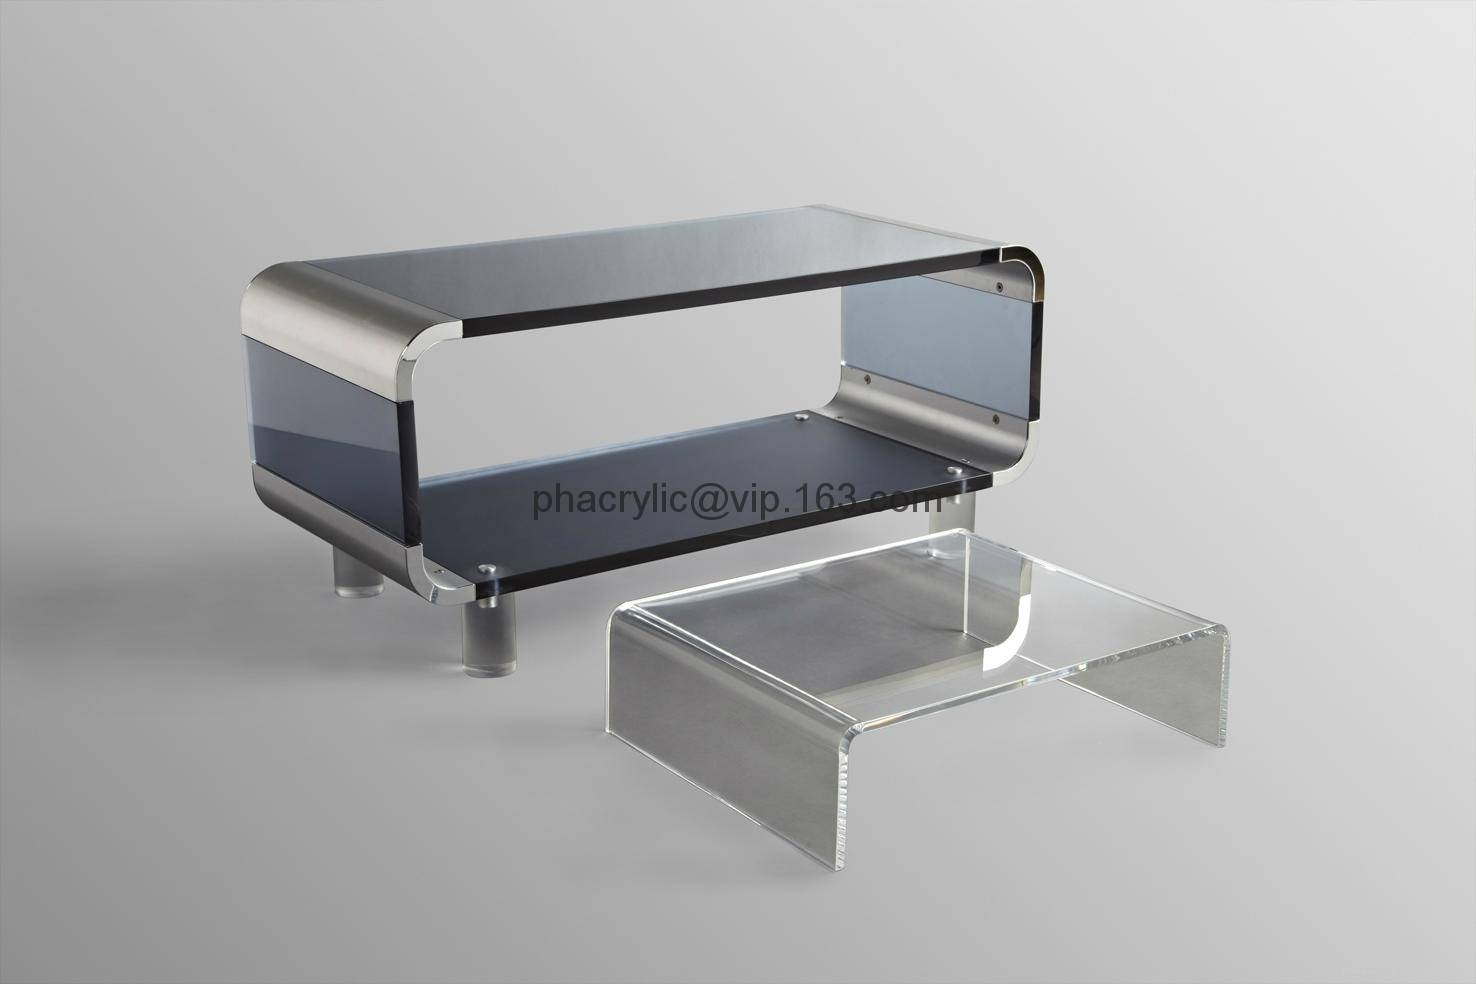 Acrylic Tv Stand, Plexiglass Tv Cabinet, Lucite Tv Stand - Tv802 with Acrylic Tv Stands (Image 3 of 15)